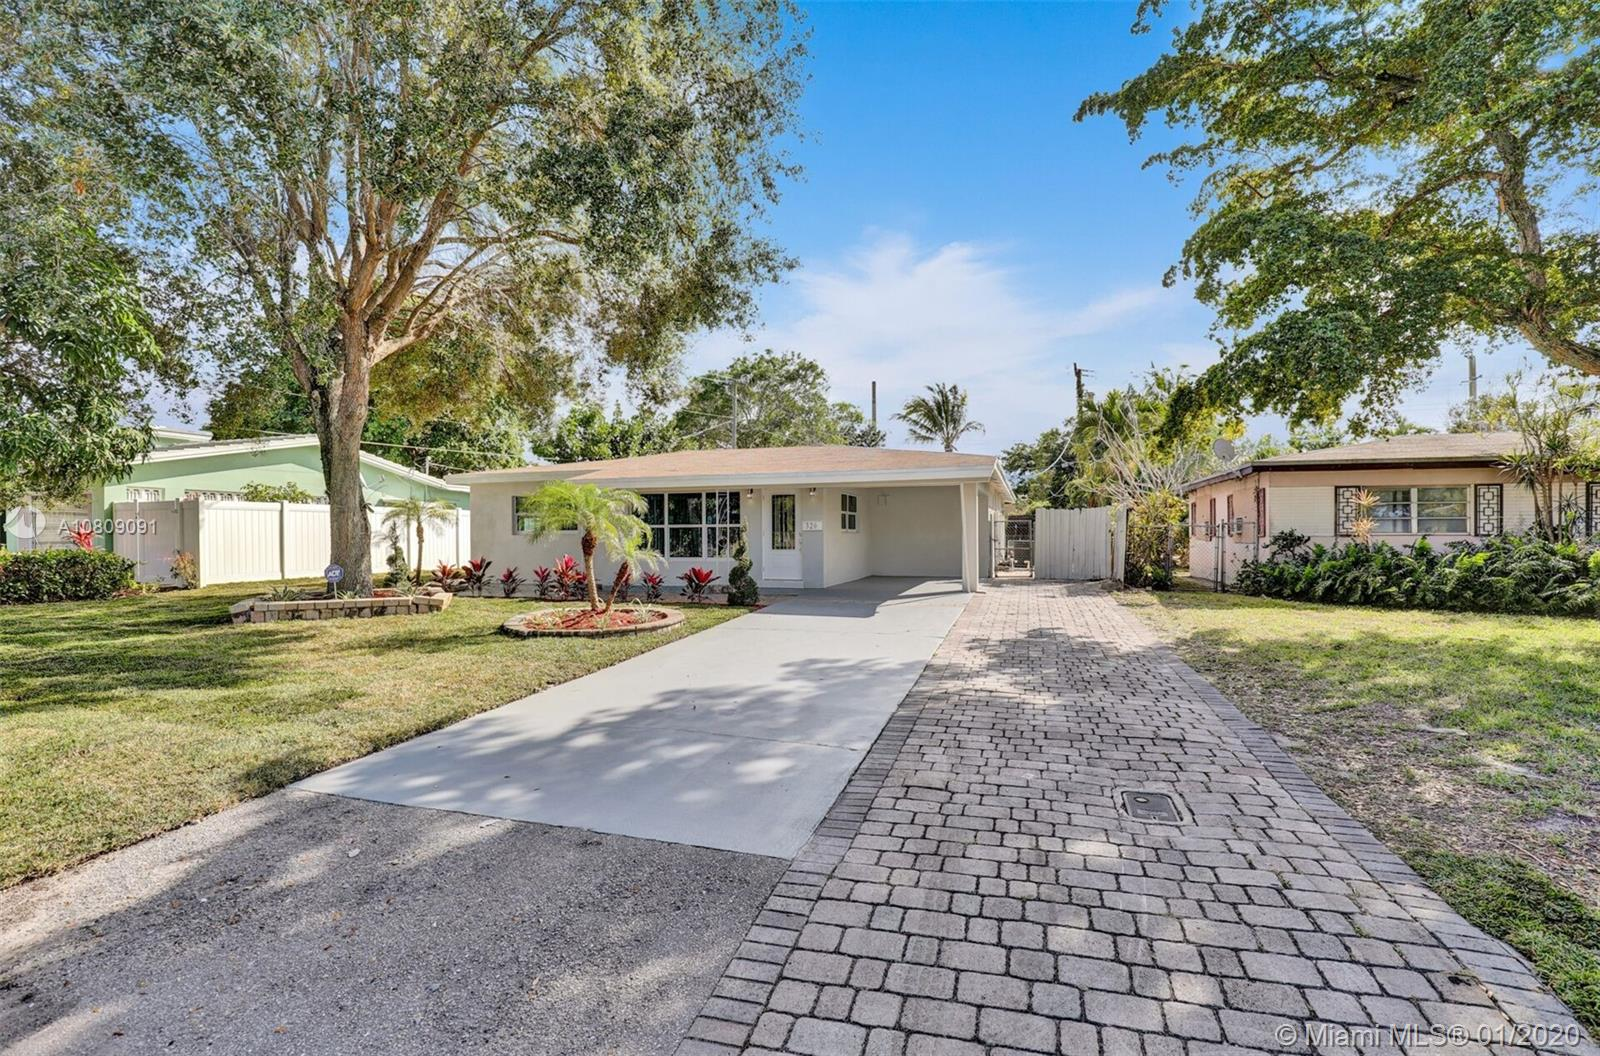 BEAUTIFULLY FULLY REMODELED 3/2 HOME IN THE HEART OF OAKLAND PARK! PERFECT TURN-KEY STARTER HOME OR VACATION RENTAL OPPORTUNITY! HOME FEATURES ALL HURRICANE IMPACT WINDOWS AND DOORS, 2019 SHINGLE ROOF, NEWER 2014 A/C UNIT, NEW BATHROOMS, SEPARATE LAUNDRY ROOM WITH SAMSUNG WASHER AND DRYER, NEW ELECTRIC TANK-LESS WATER HEATER, SPRINKLERS SYSTEM AND GRASS. NEW CUSTOM KITCHEN WITH HIGH END EUROPEAN CABINETS, QUARTZ COUNTERTOP AND BRAND NEW STAINLESS STEEL APPLIANCES, RECESSED LIGHTING THROUGHOUT, LARGE BACKYARD NICE FOR ENTERTAINMENT OR TO BUILD A POOL, VERY LARGE AND SPACIOUS DRIVEWAY, FRESHLY PAINTED INSIDE/OUT... MINUTES FROM SCHOOLS, BEACH, SHOPPING PLAZAS ETC.. HURRY THIS WONT LAST LONG!!